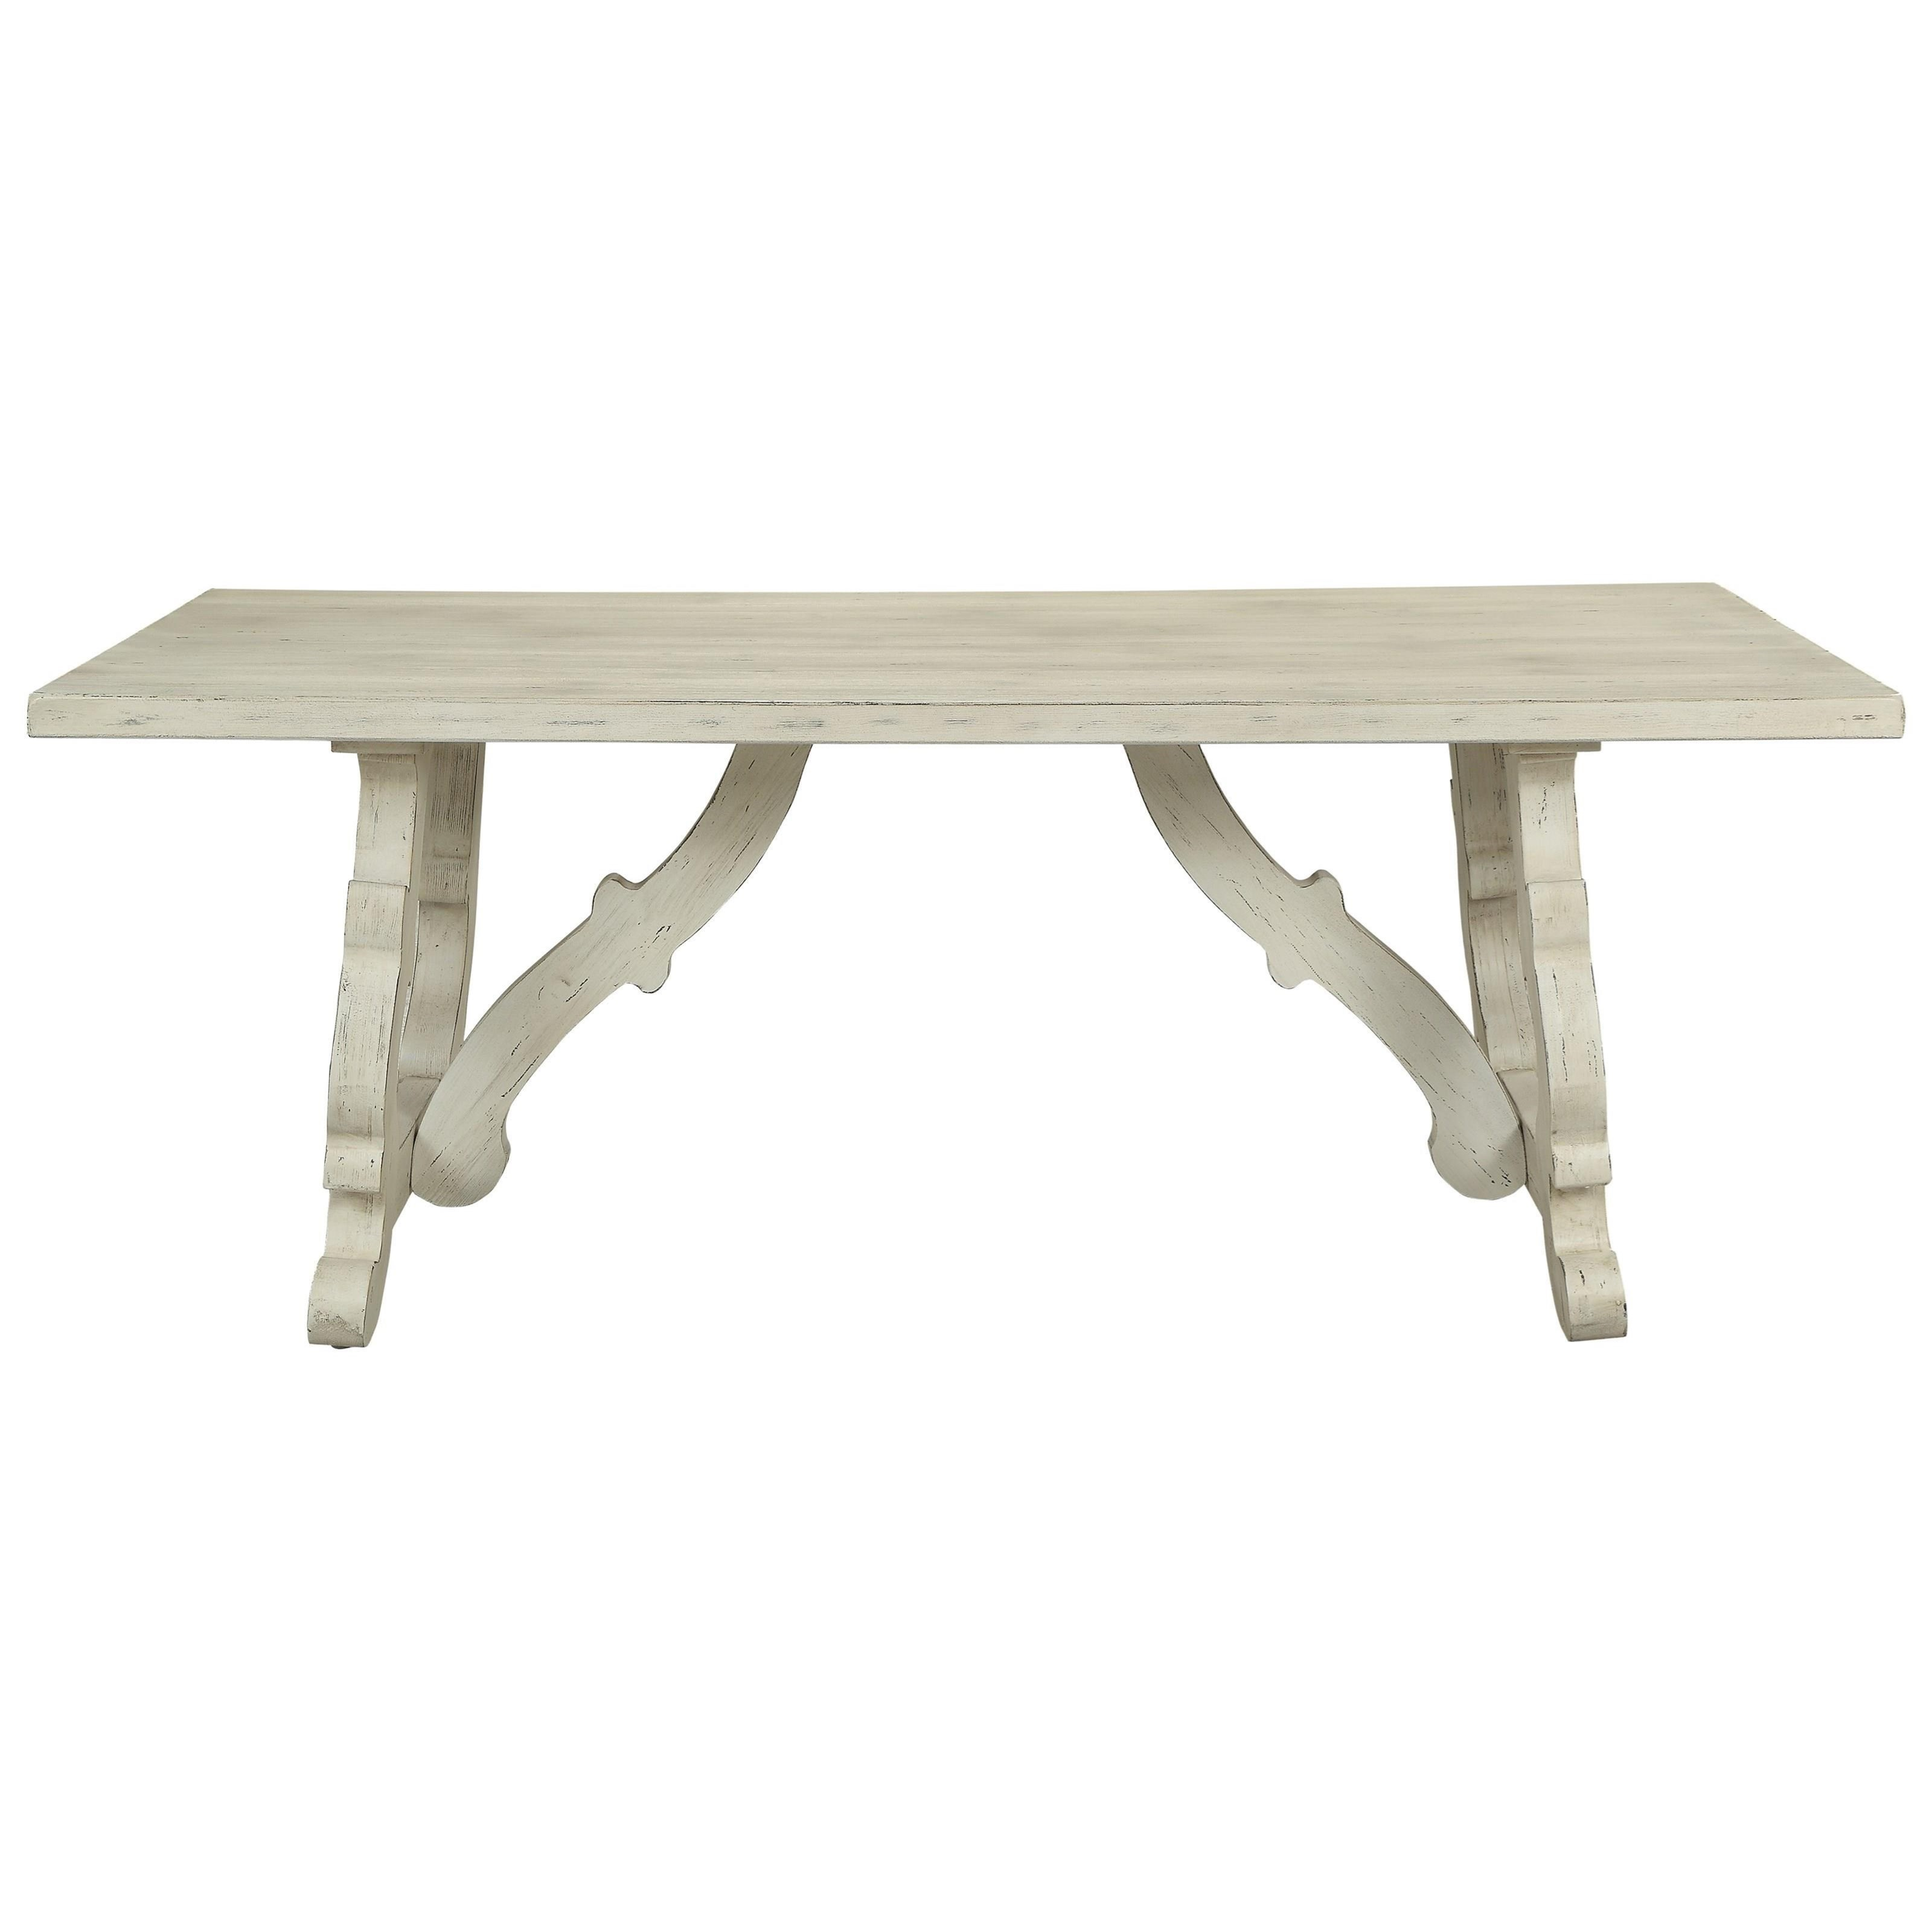 Shown In: Coast To Coast Imports Orchard Park Orchard Park Dining Table